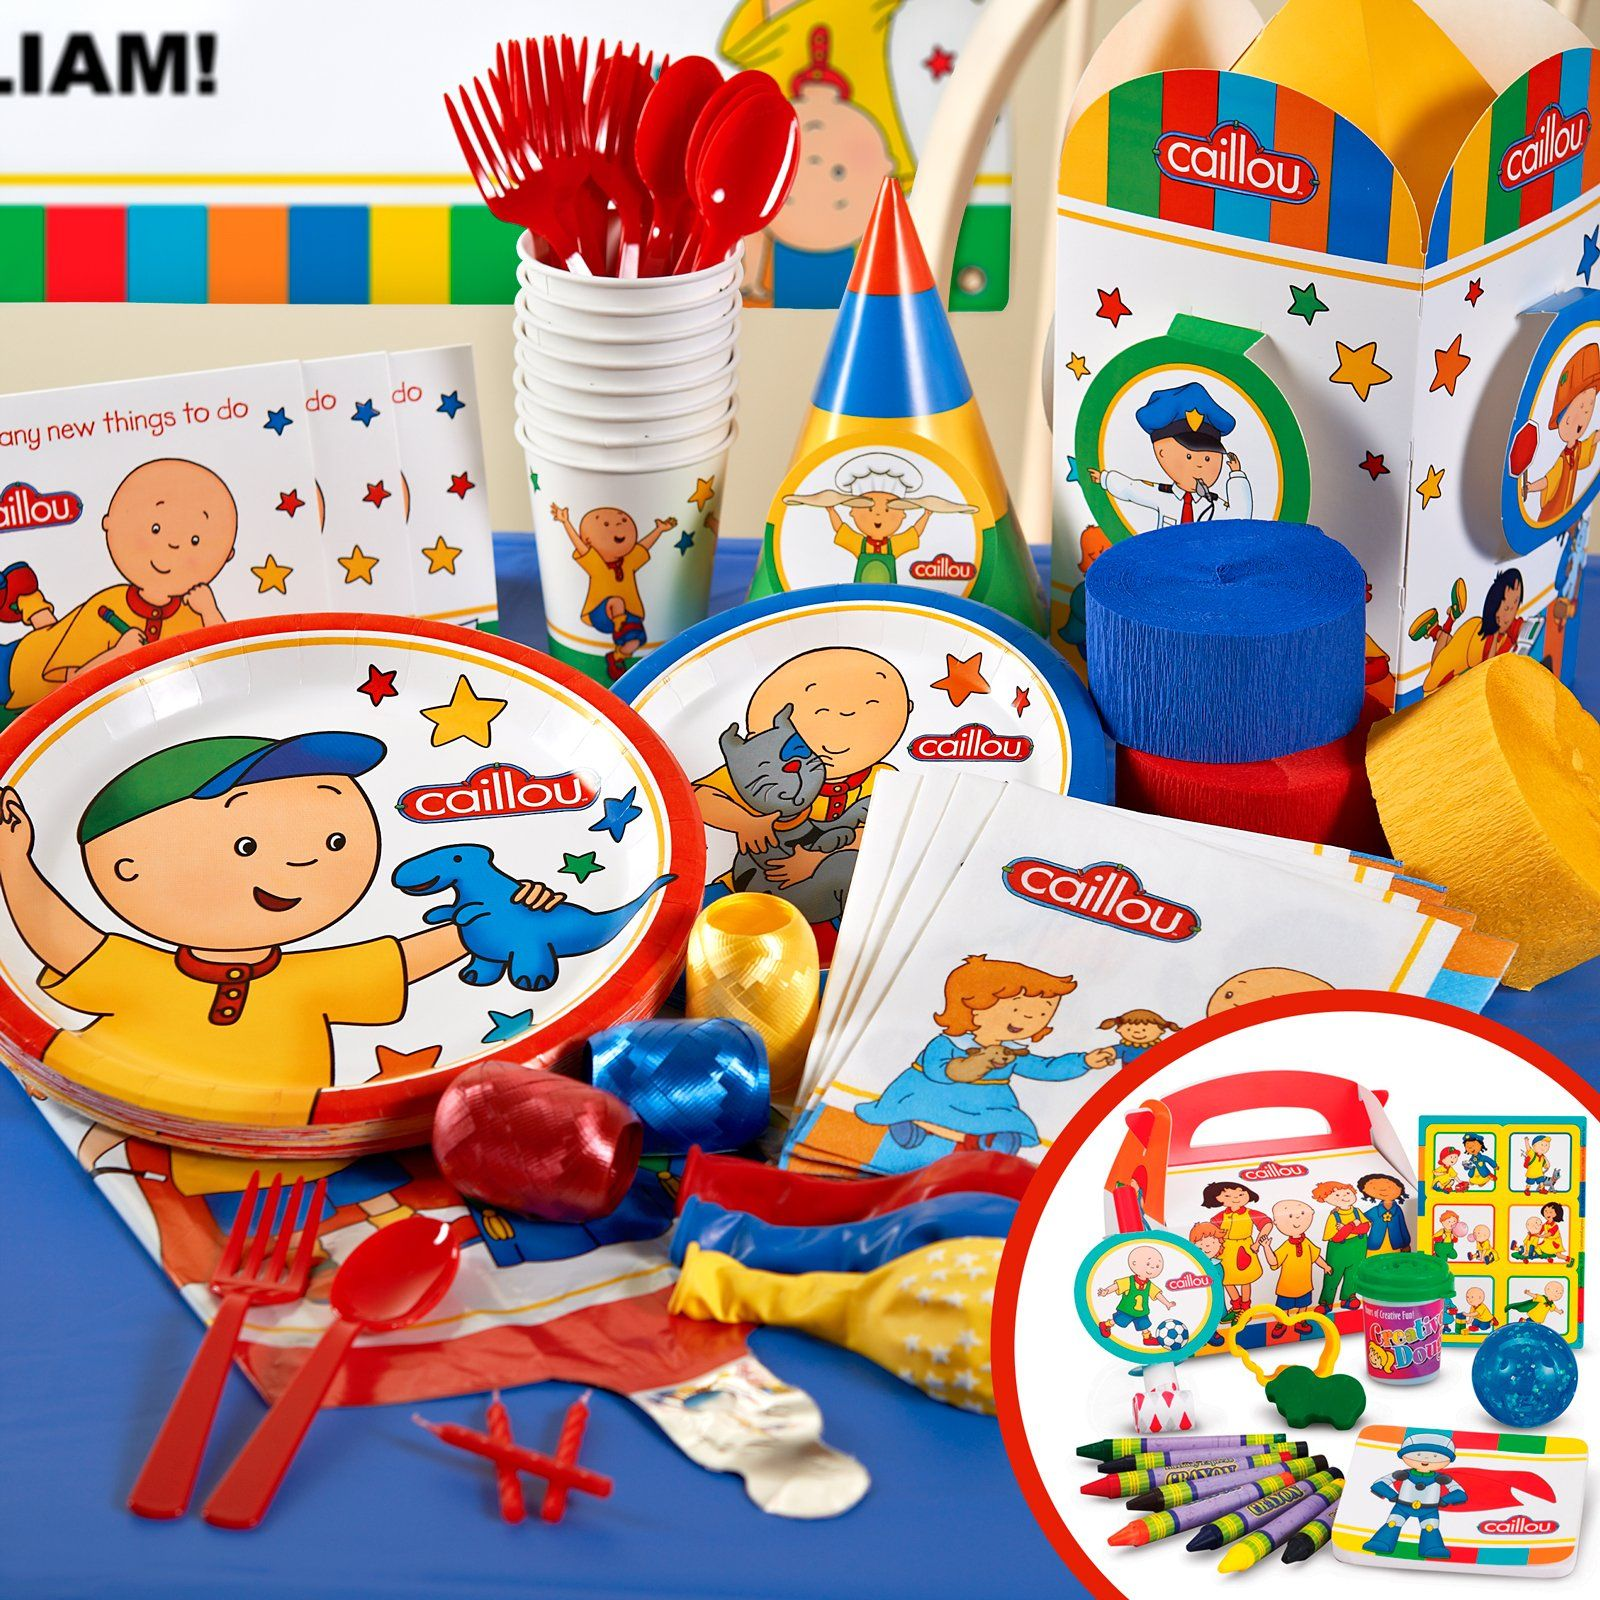 Caillou Birthday Party Supplies | Caillou Birthday Party Ideas ...